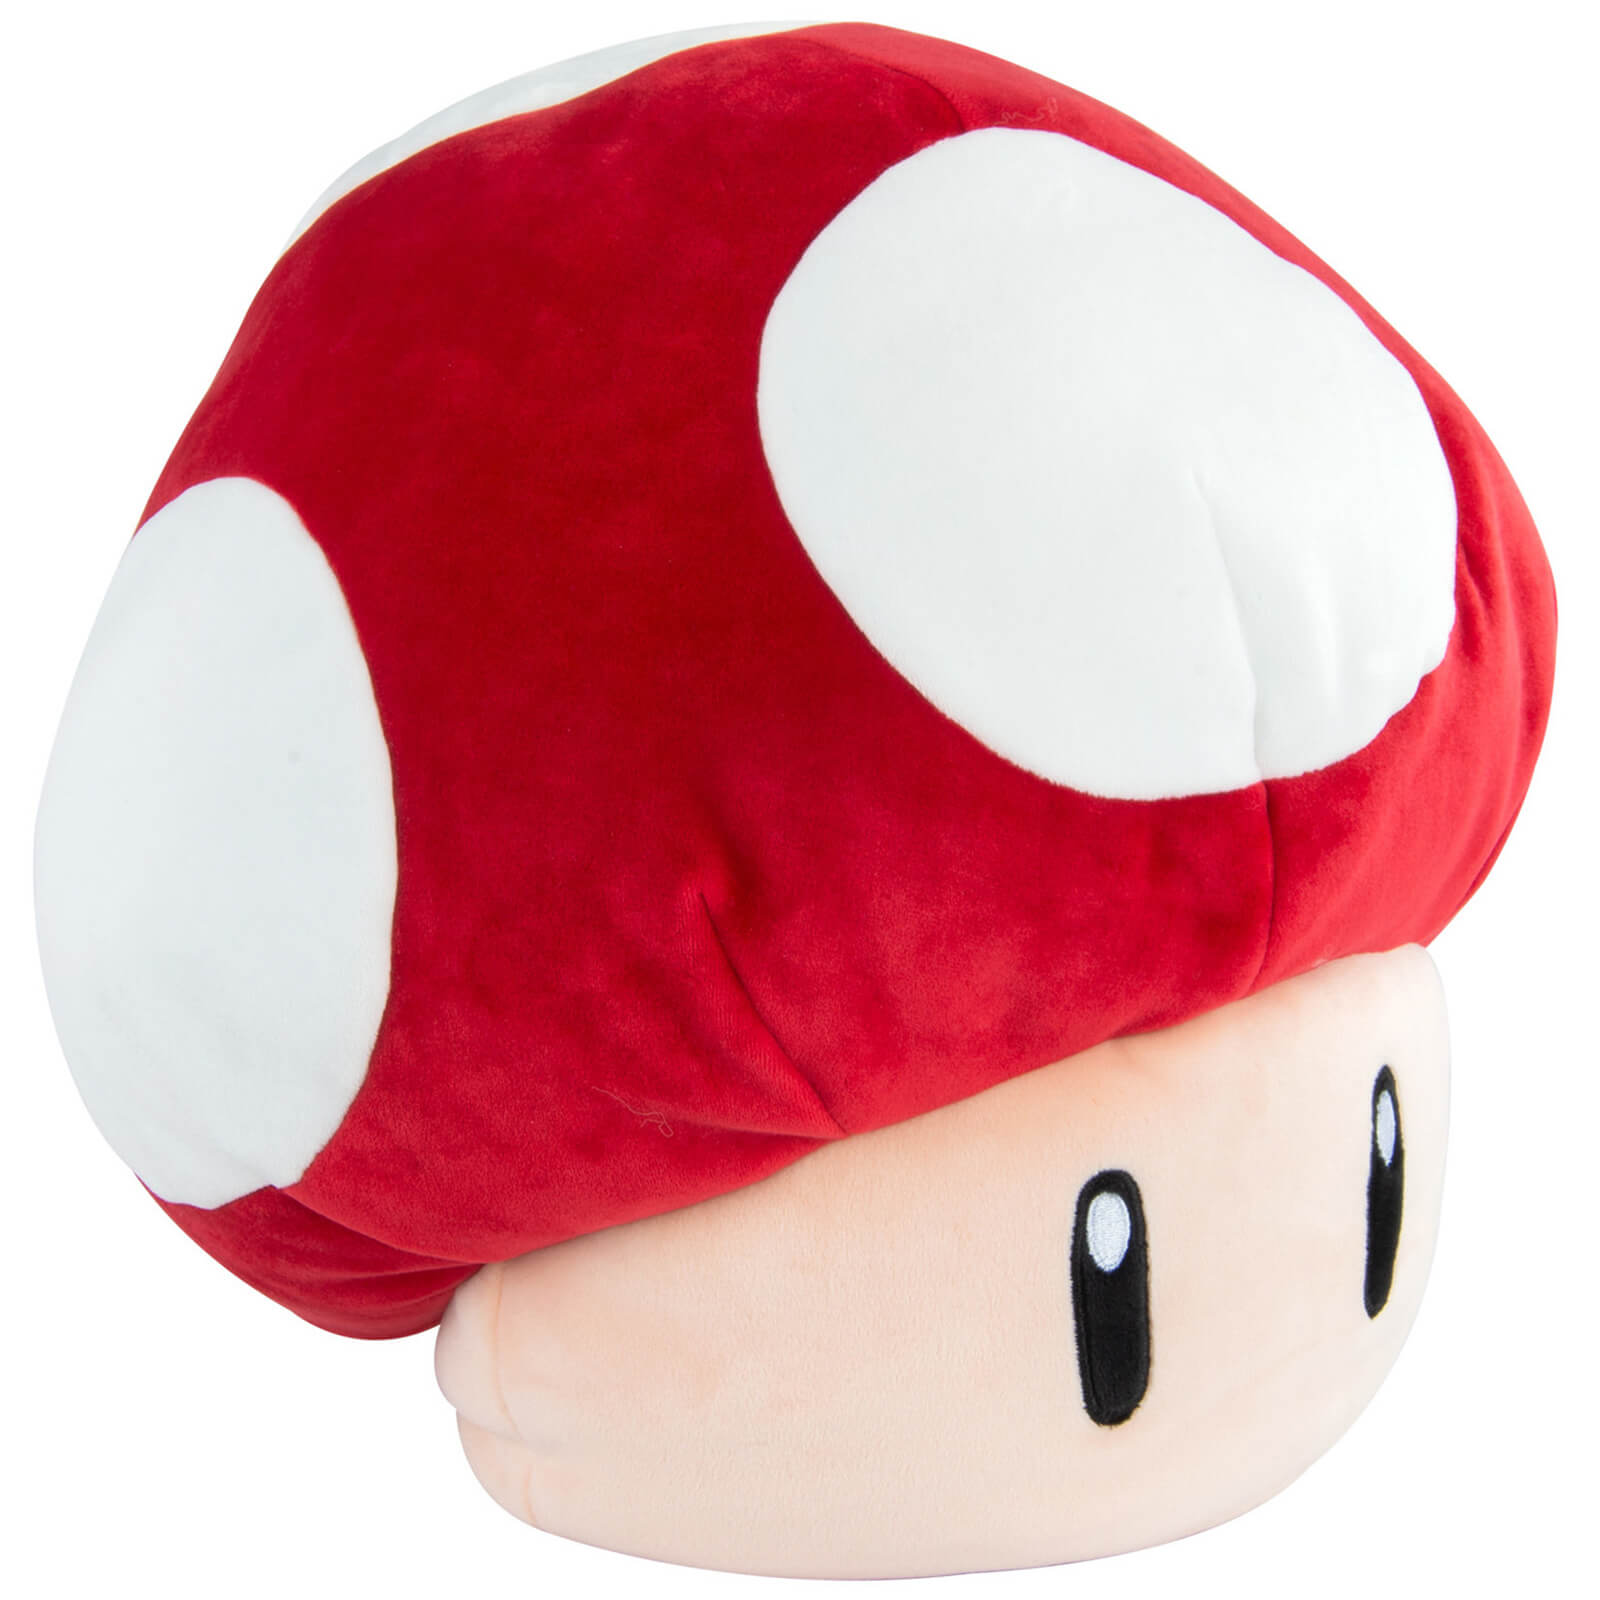 Image of Mario Kart Large Plush Super Mushroom Toy